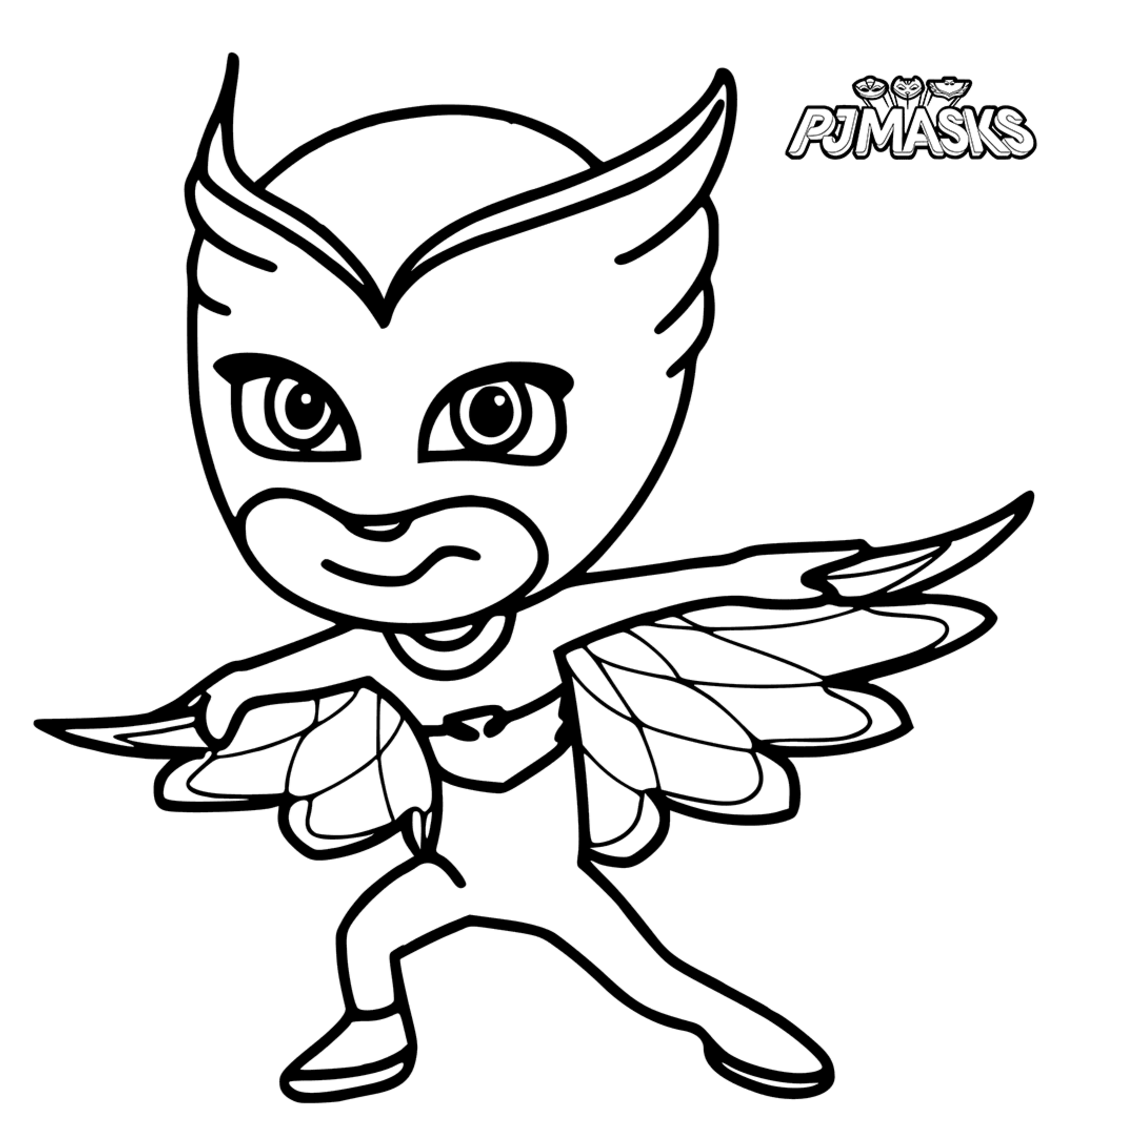 1128x1146 Pj Masks Coloring Pages To Download And Print For Free Jj